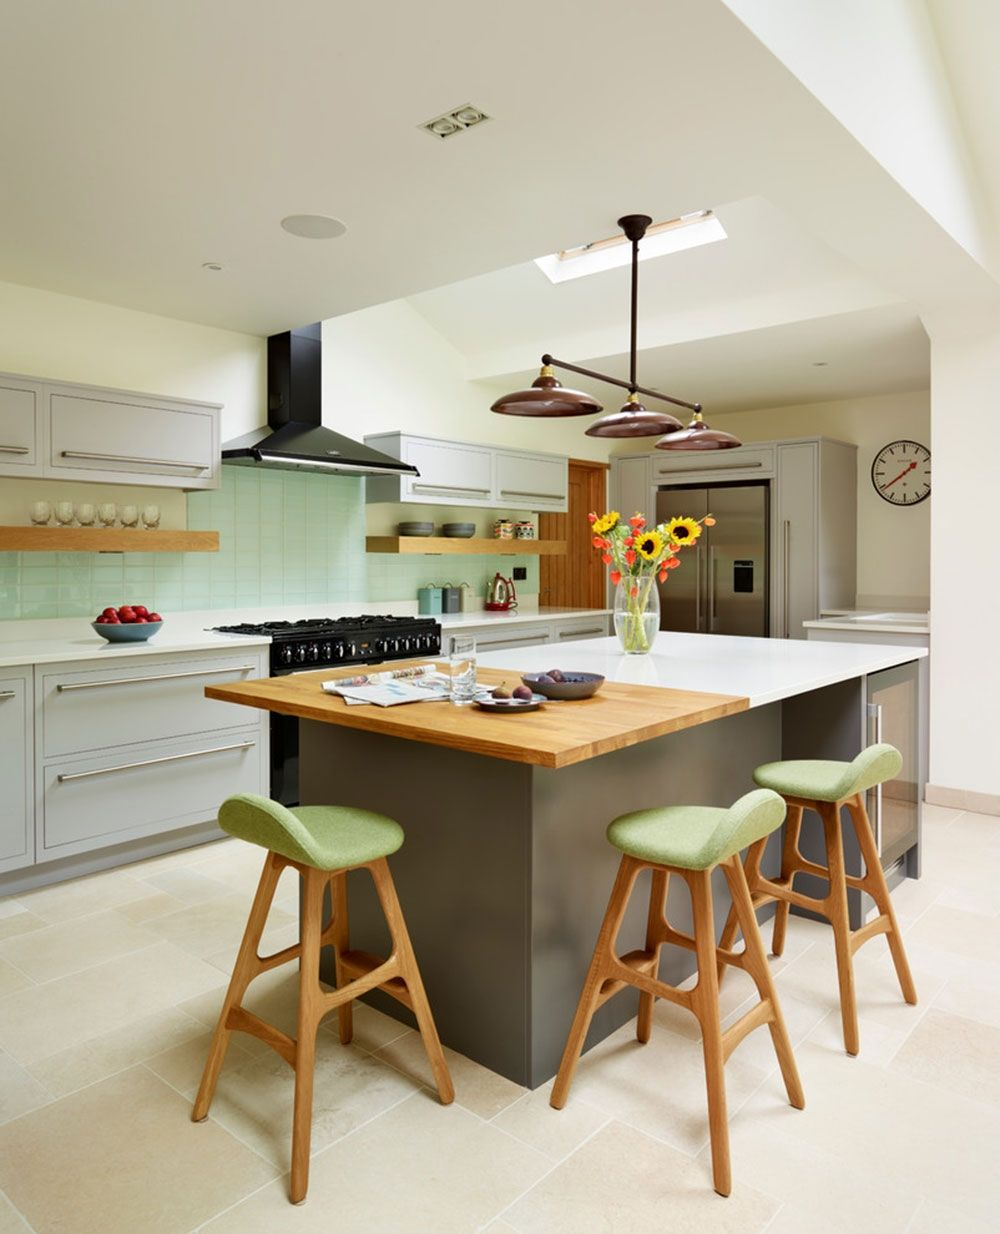 Pics Of Kitchen Islands With Seating navigatorspbfo